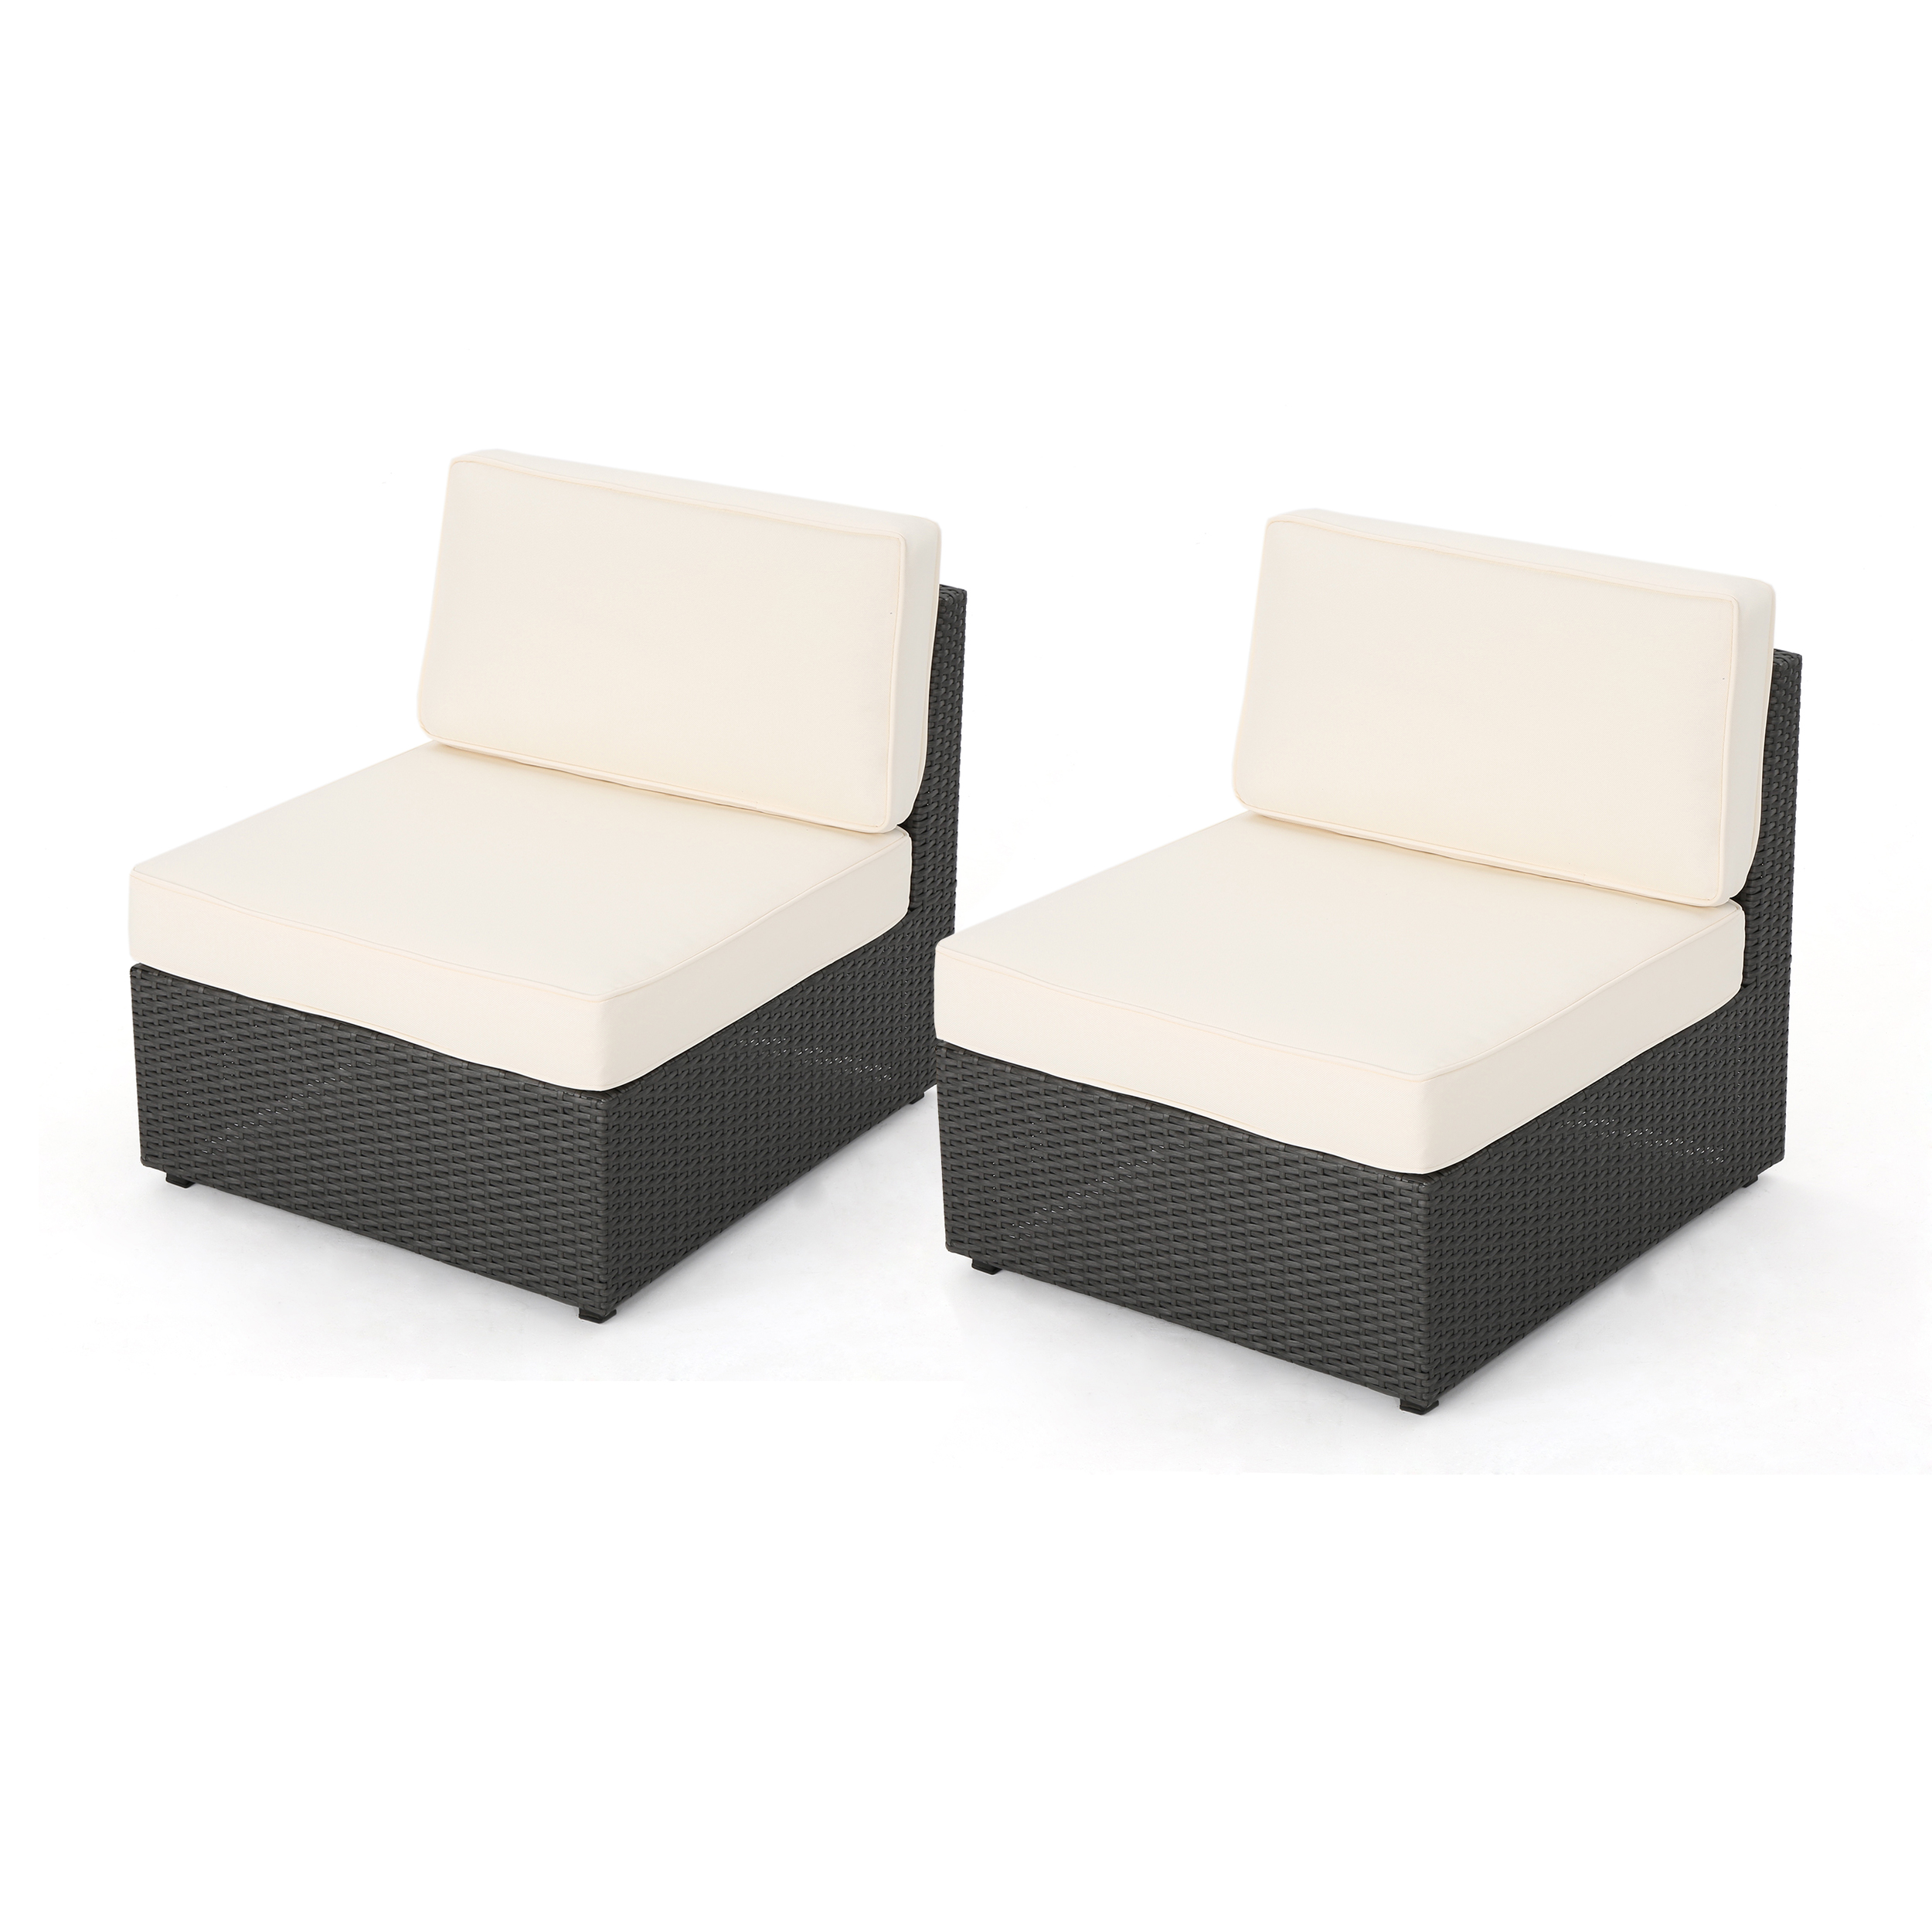 sabrina sofa kivik 3 plazas chaise longue outdoor grey wicker armless sectional seat with water resistant cushions set of 2 white walmart com